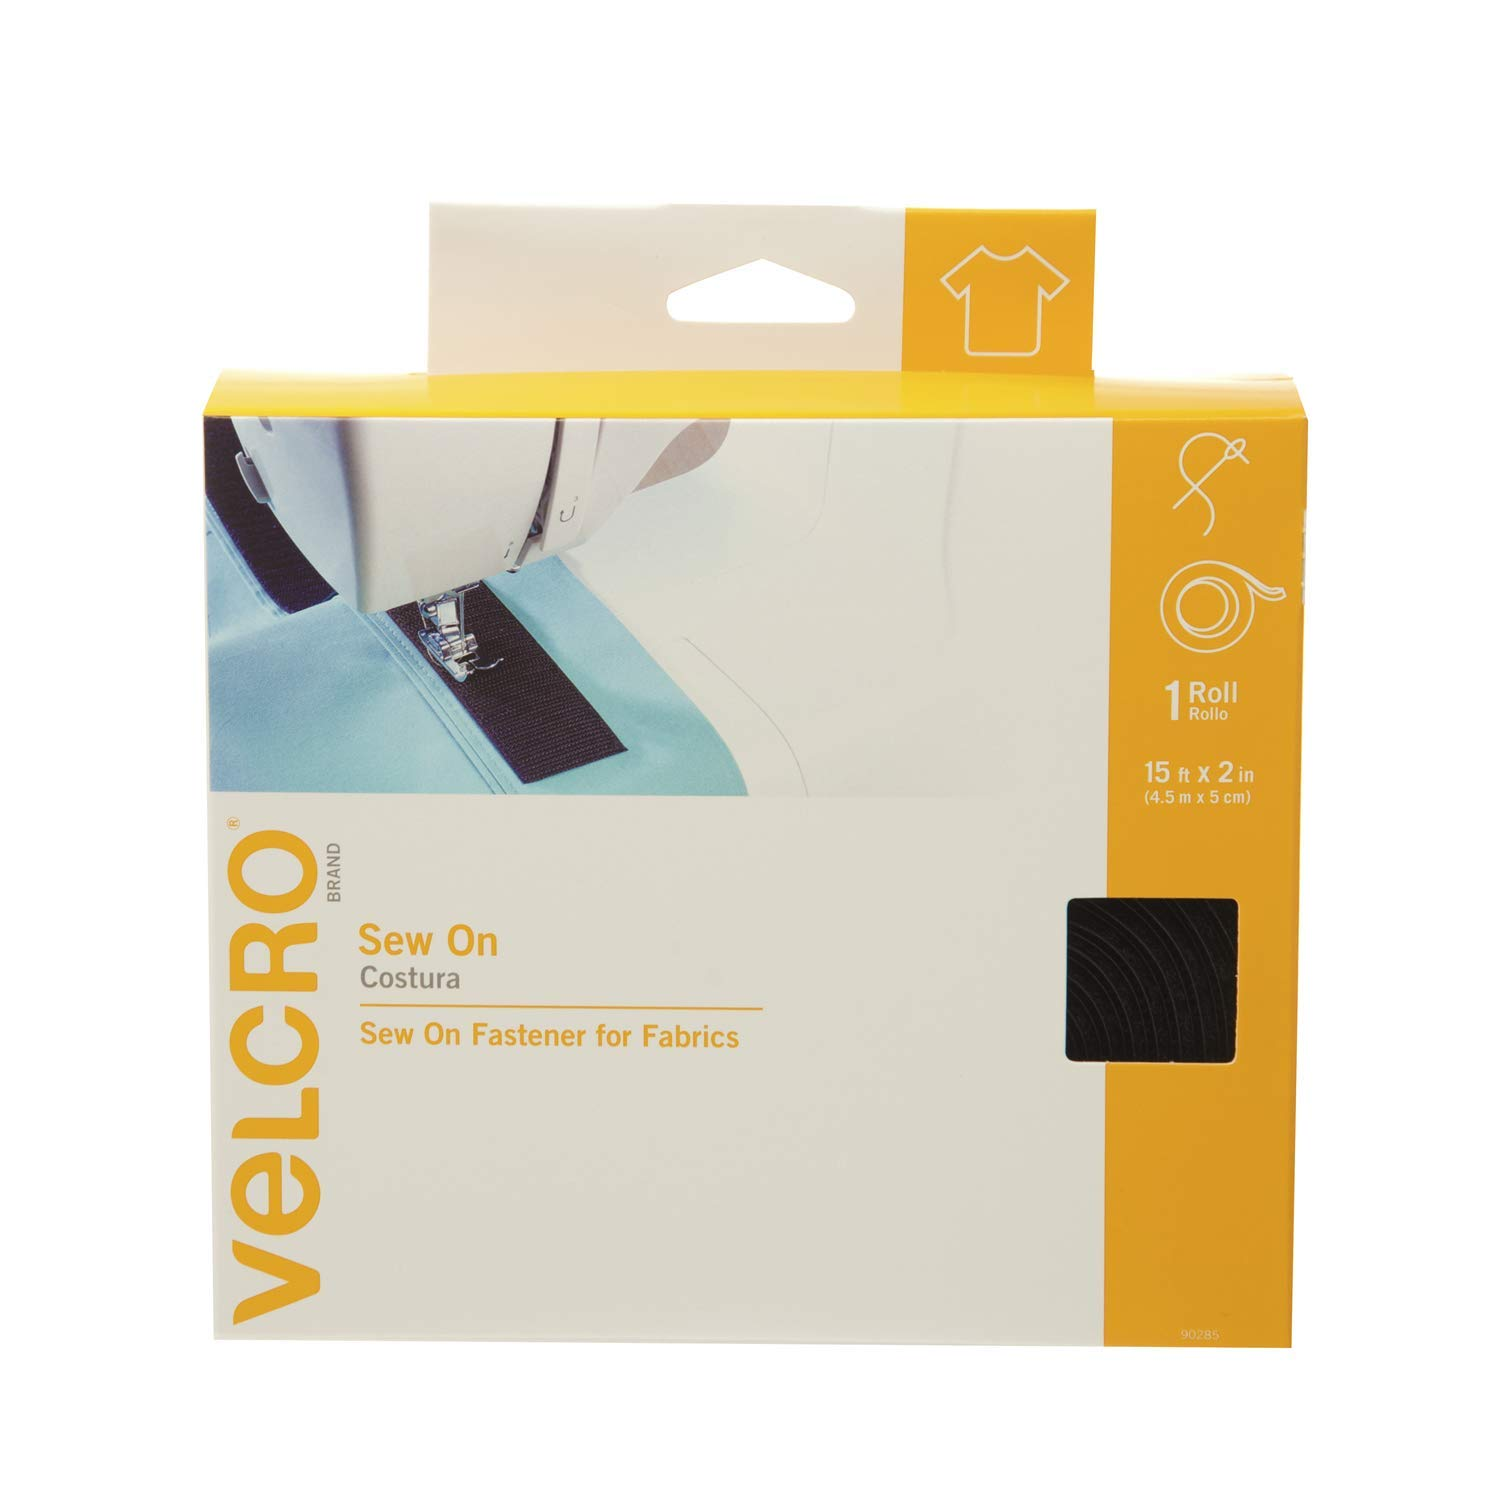 VELCRO Brand For Fabrics | Sew On Fabric Tape for Alterations and Hemming | No Ironing or Gluing | Ideal Substitute for Snaps and Buttons | Tape, 15ft x 2in, Black by VELCRO Brand